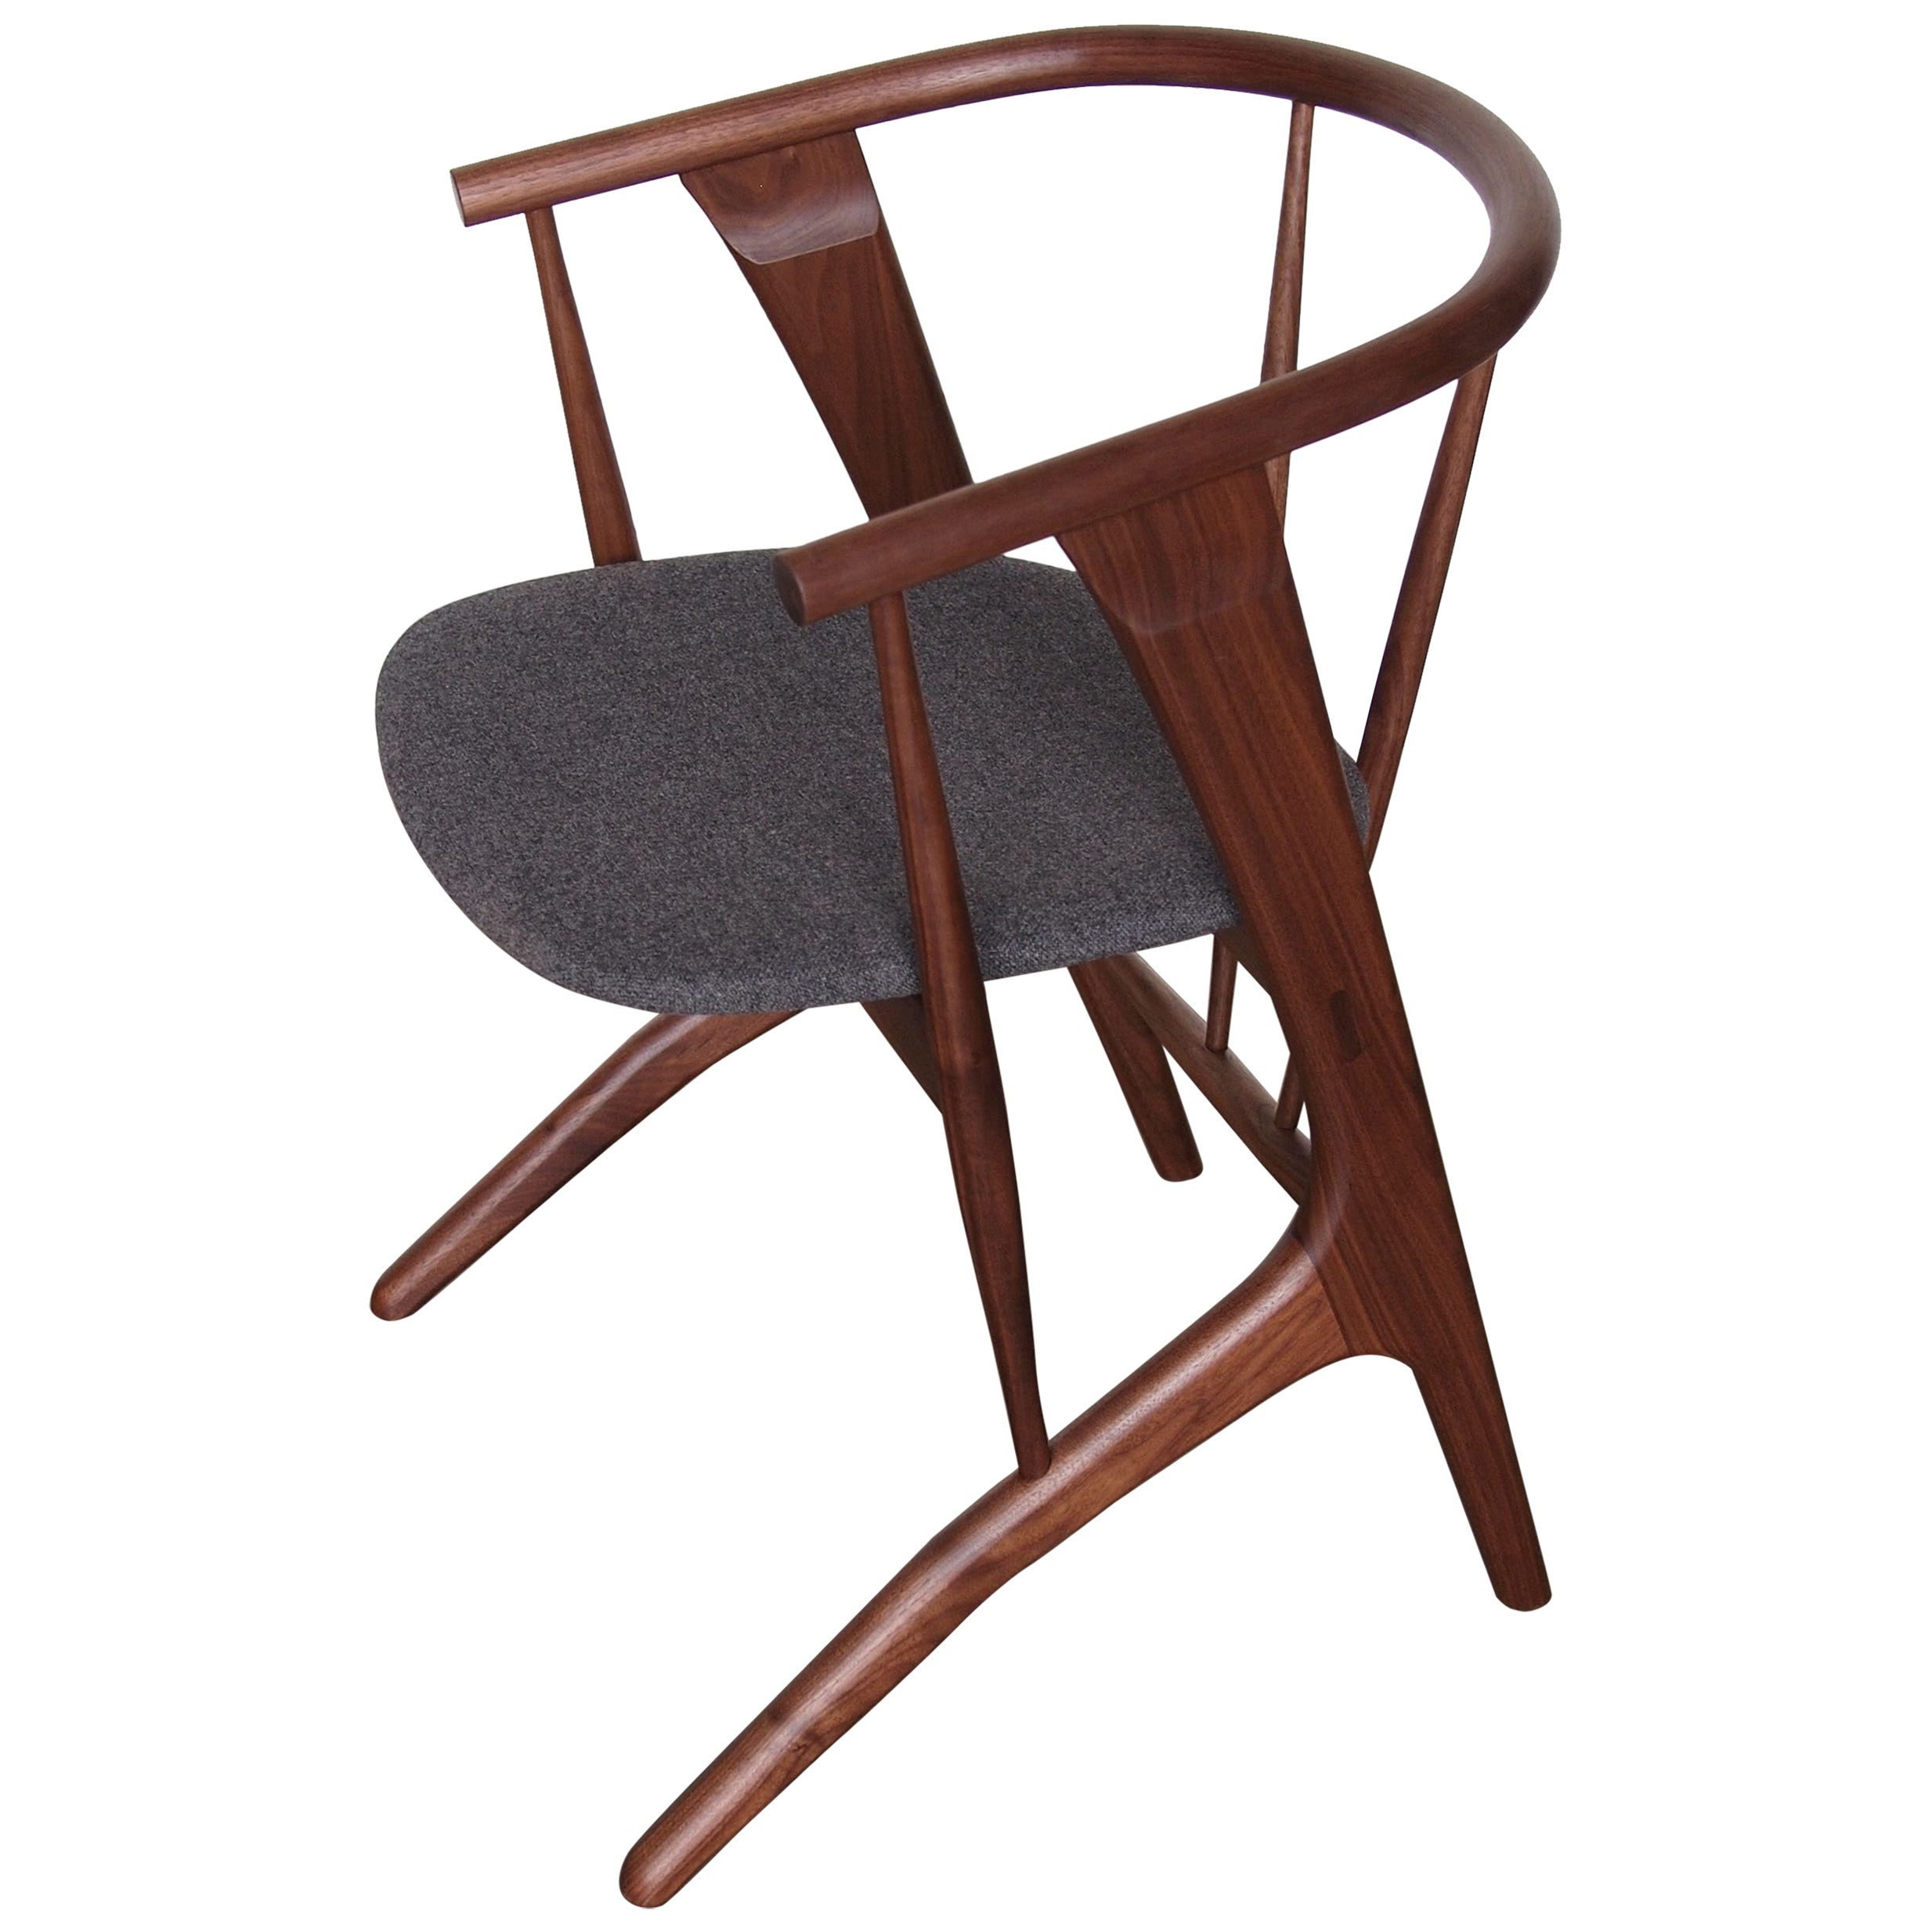 Phloem studio zoe chair handmade modern walnut dining chair with upholstery for sale at 1stdibs